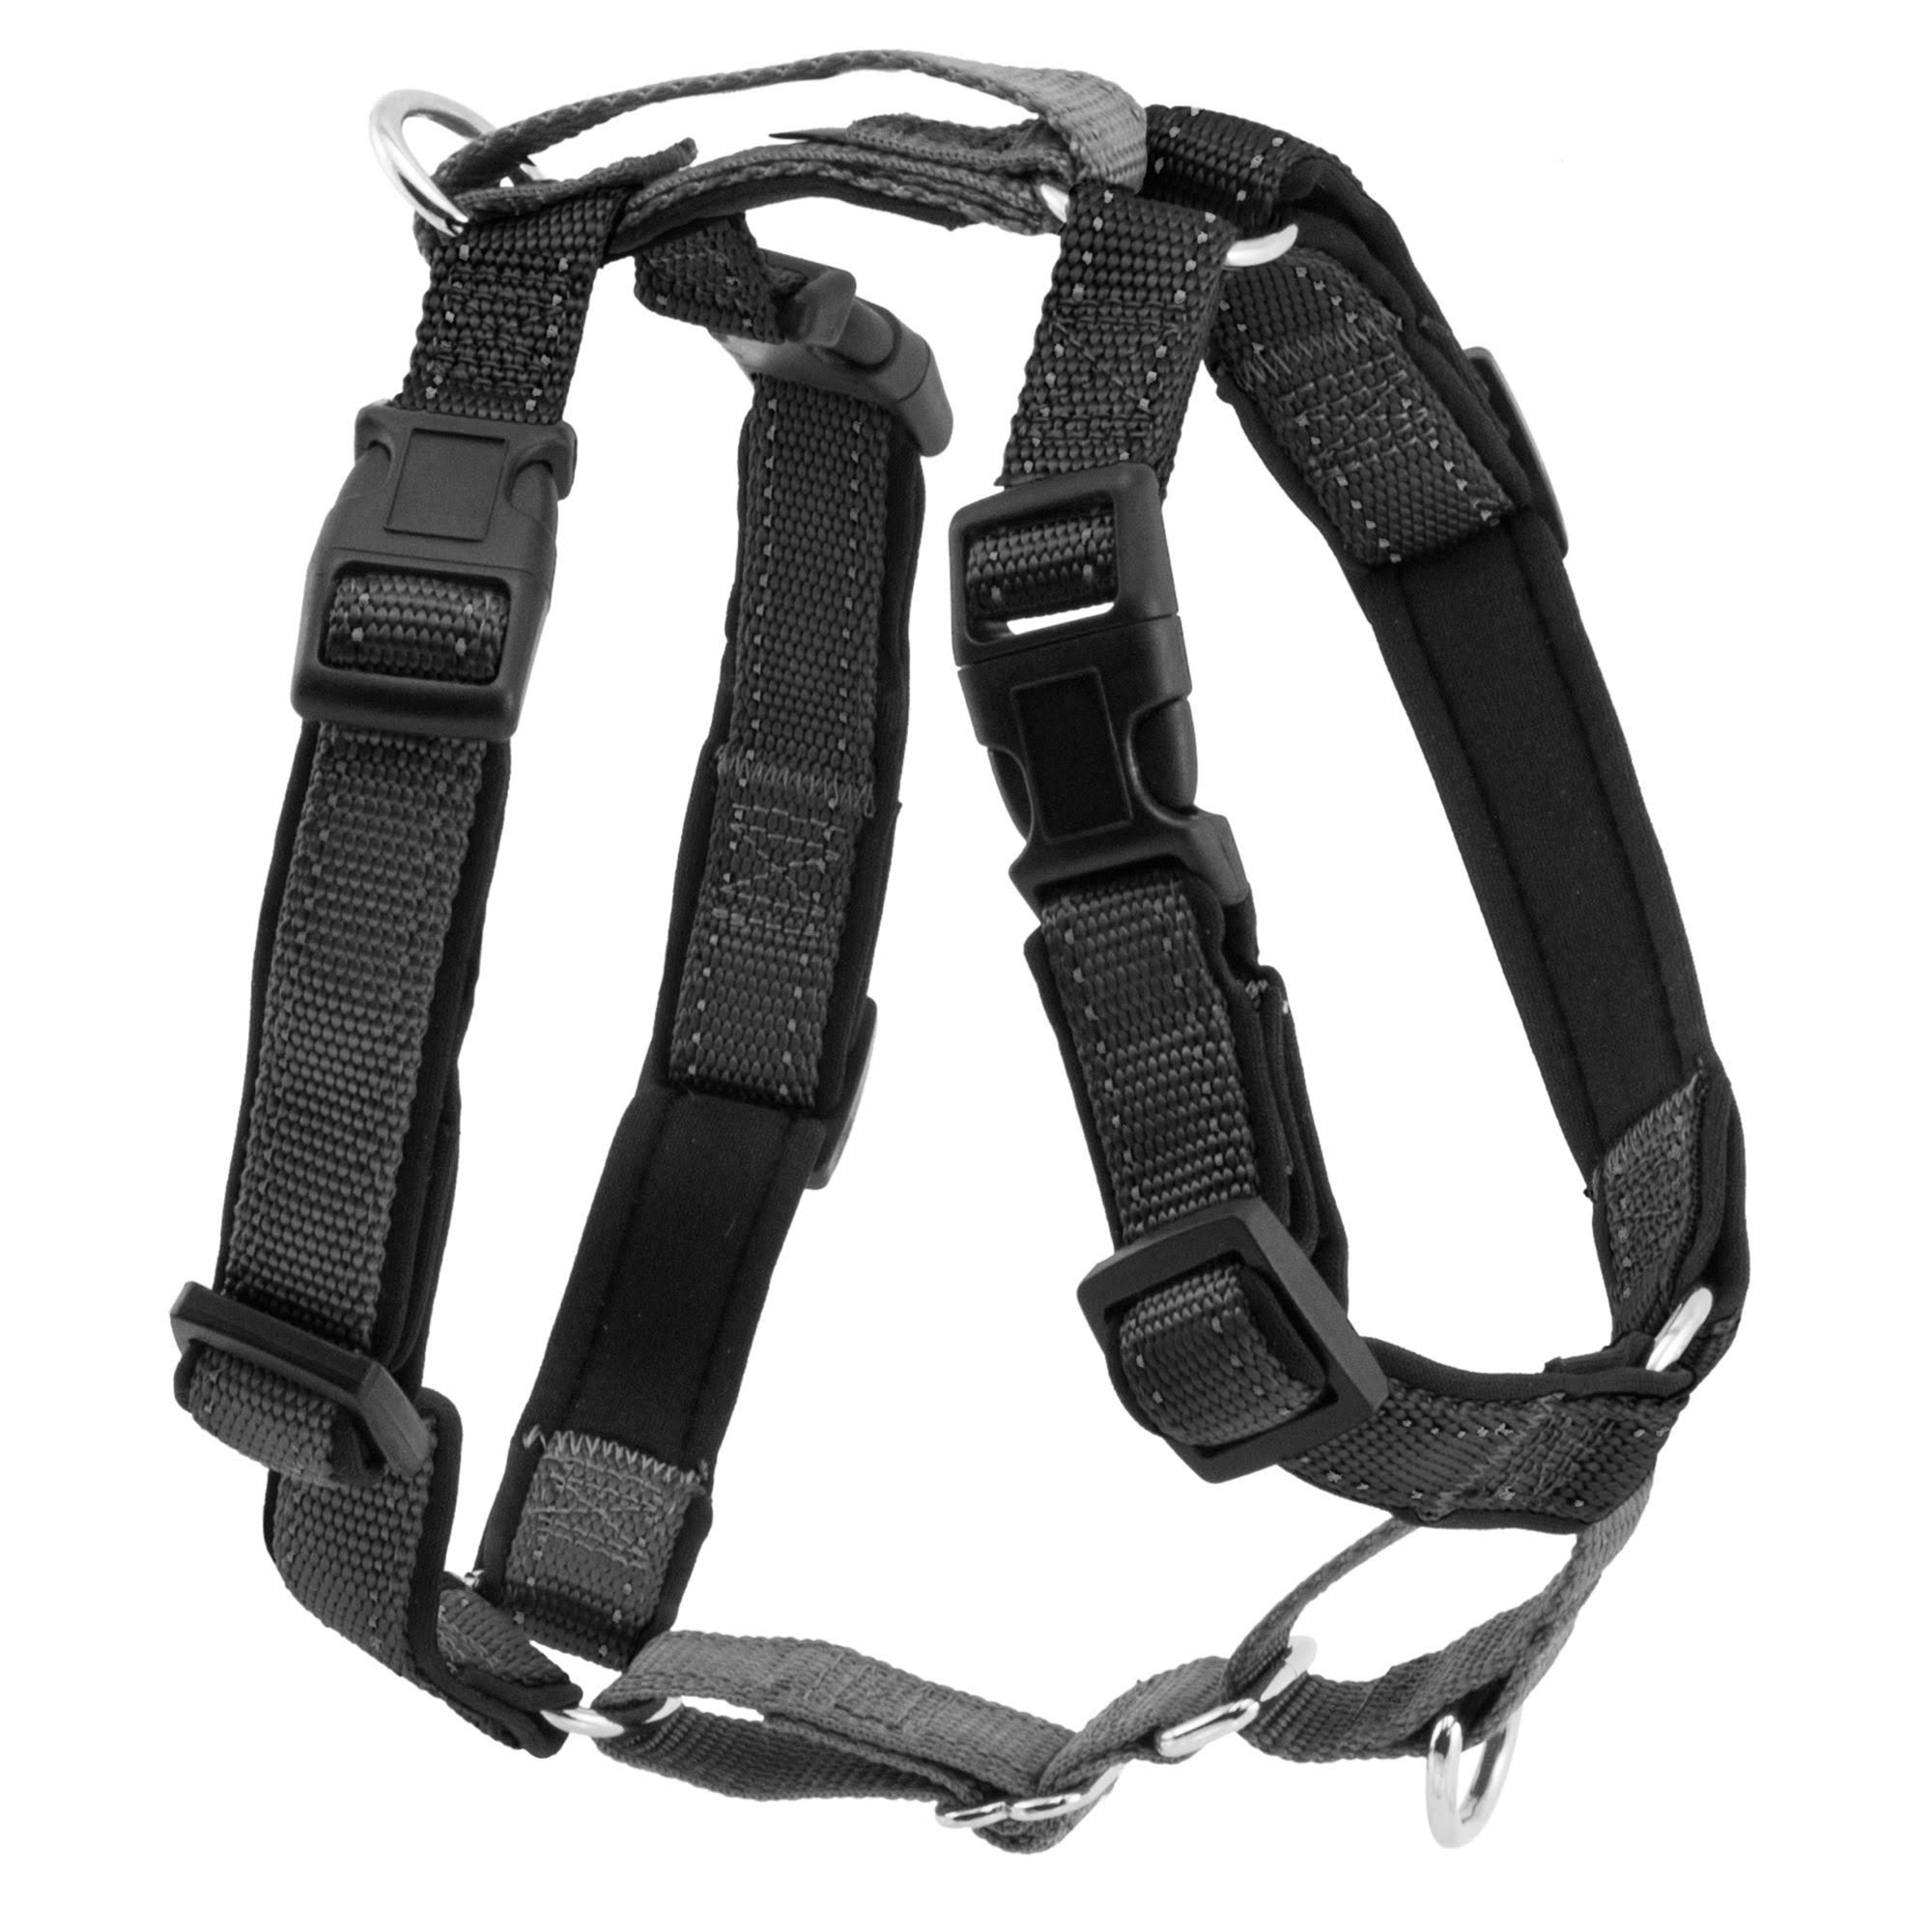 PetSafe 3 in 1 Black Dog Harness - Large